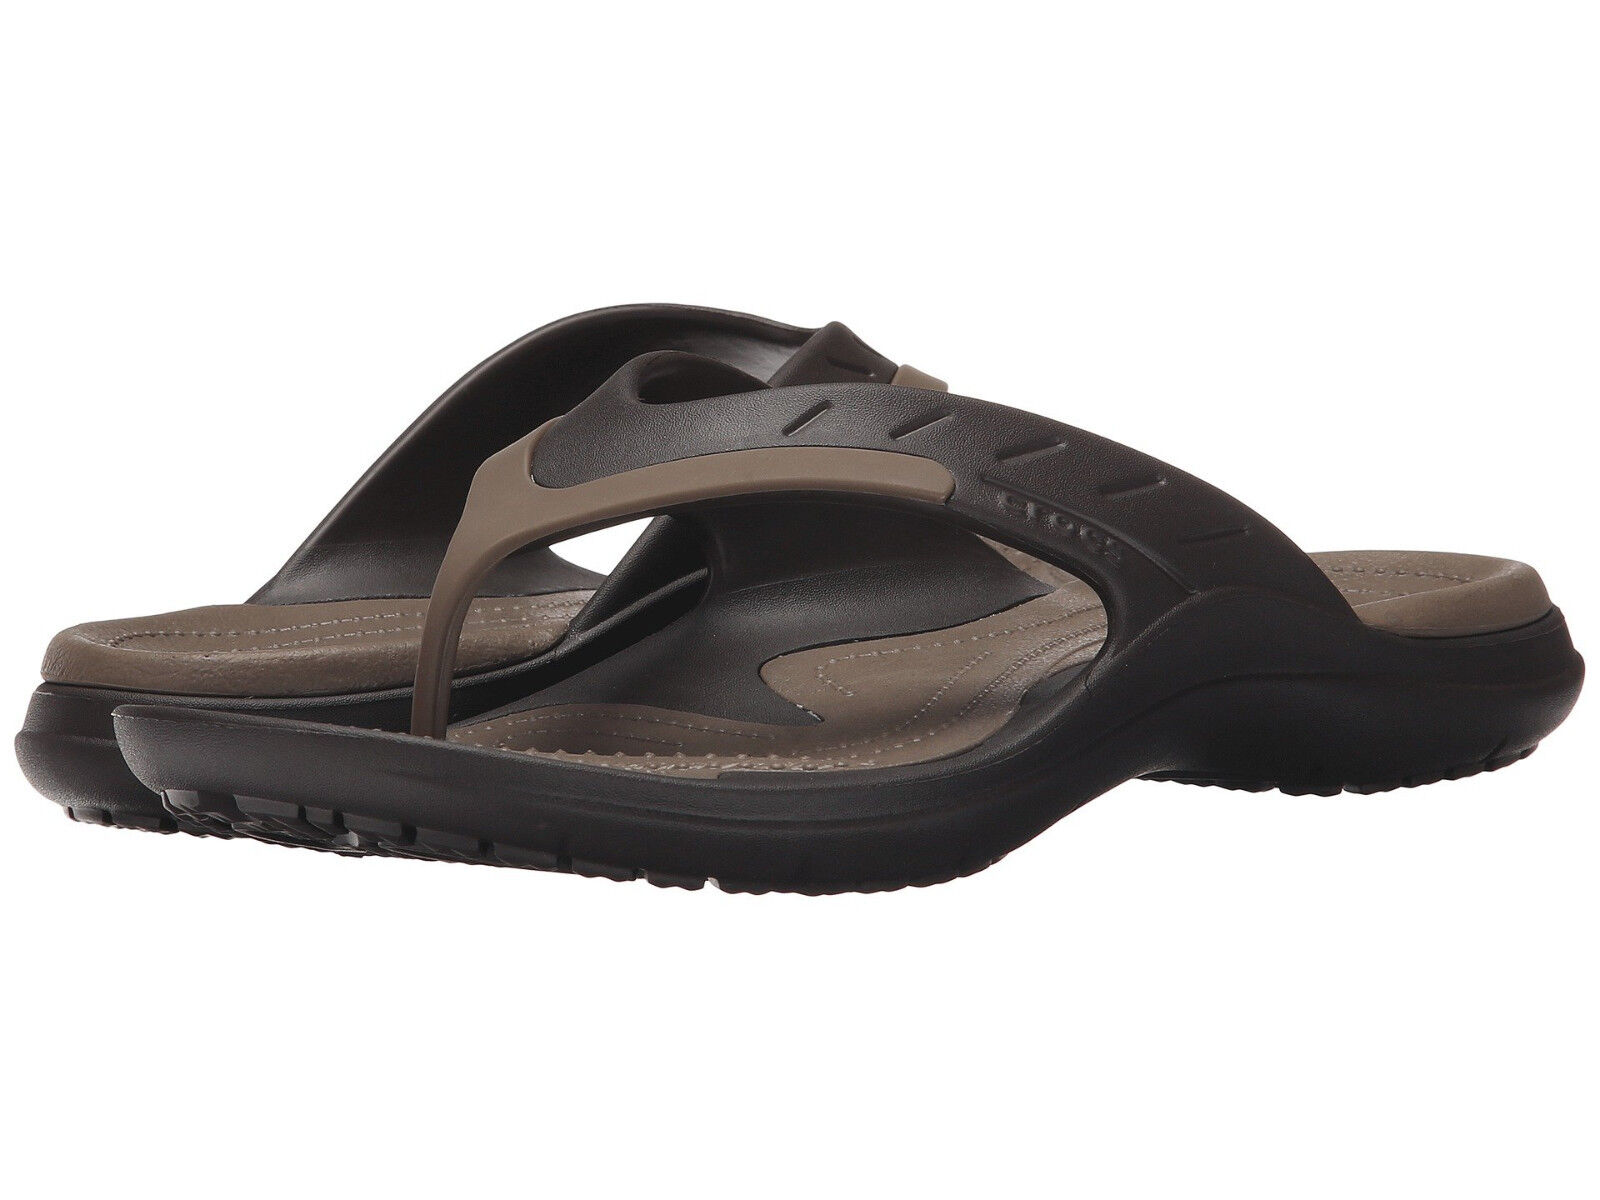 Men Crocs Modi Sport Flip Flop Sandal 202636-23B Espresso Walnut 100% Authentic